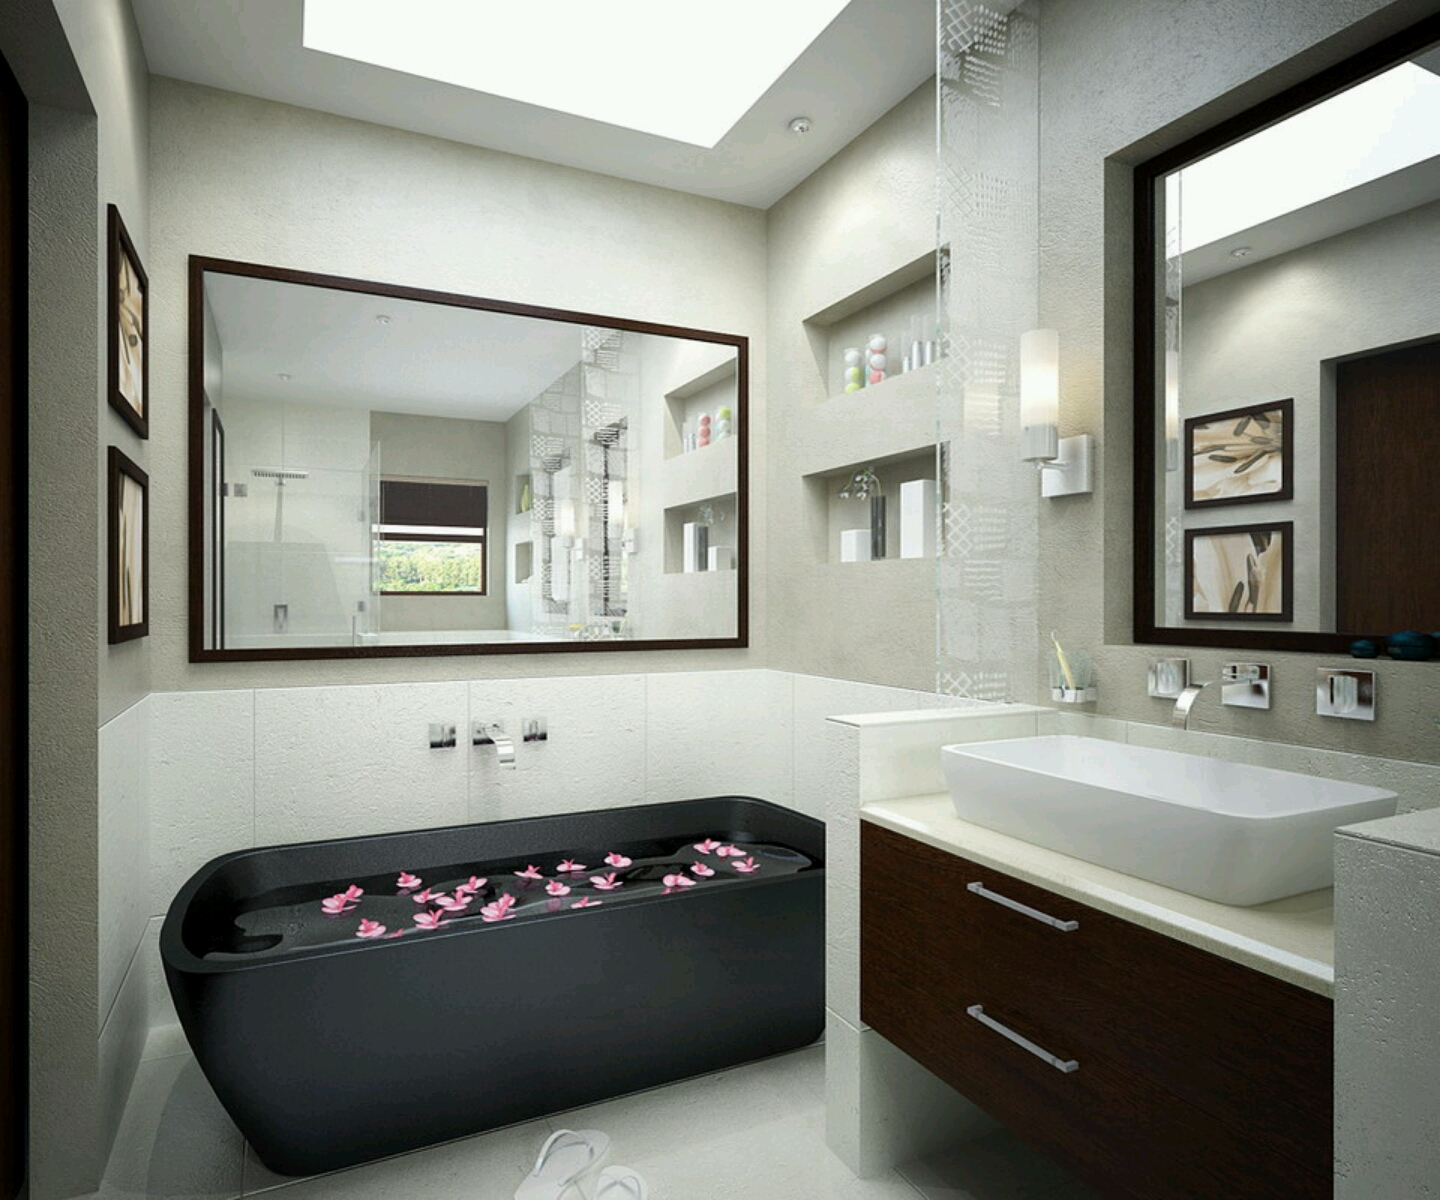 Modern bathrooms cabinets designs. ~ Furniture Gallery